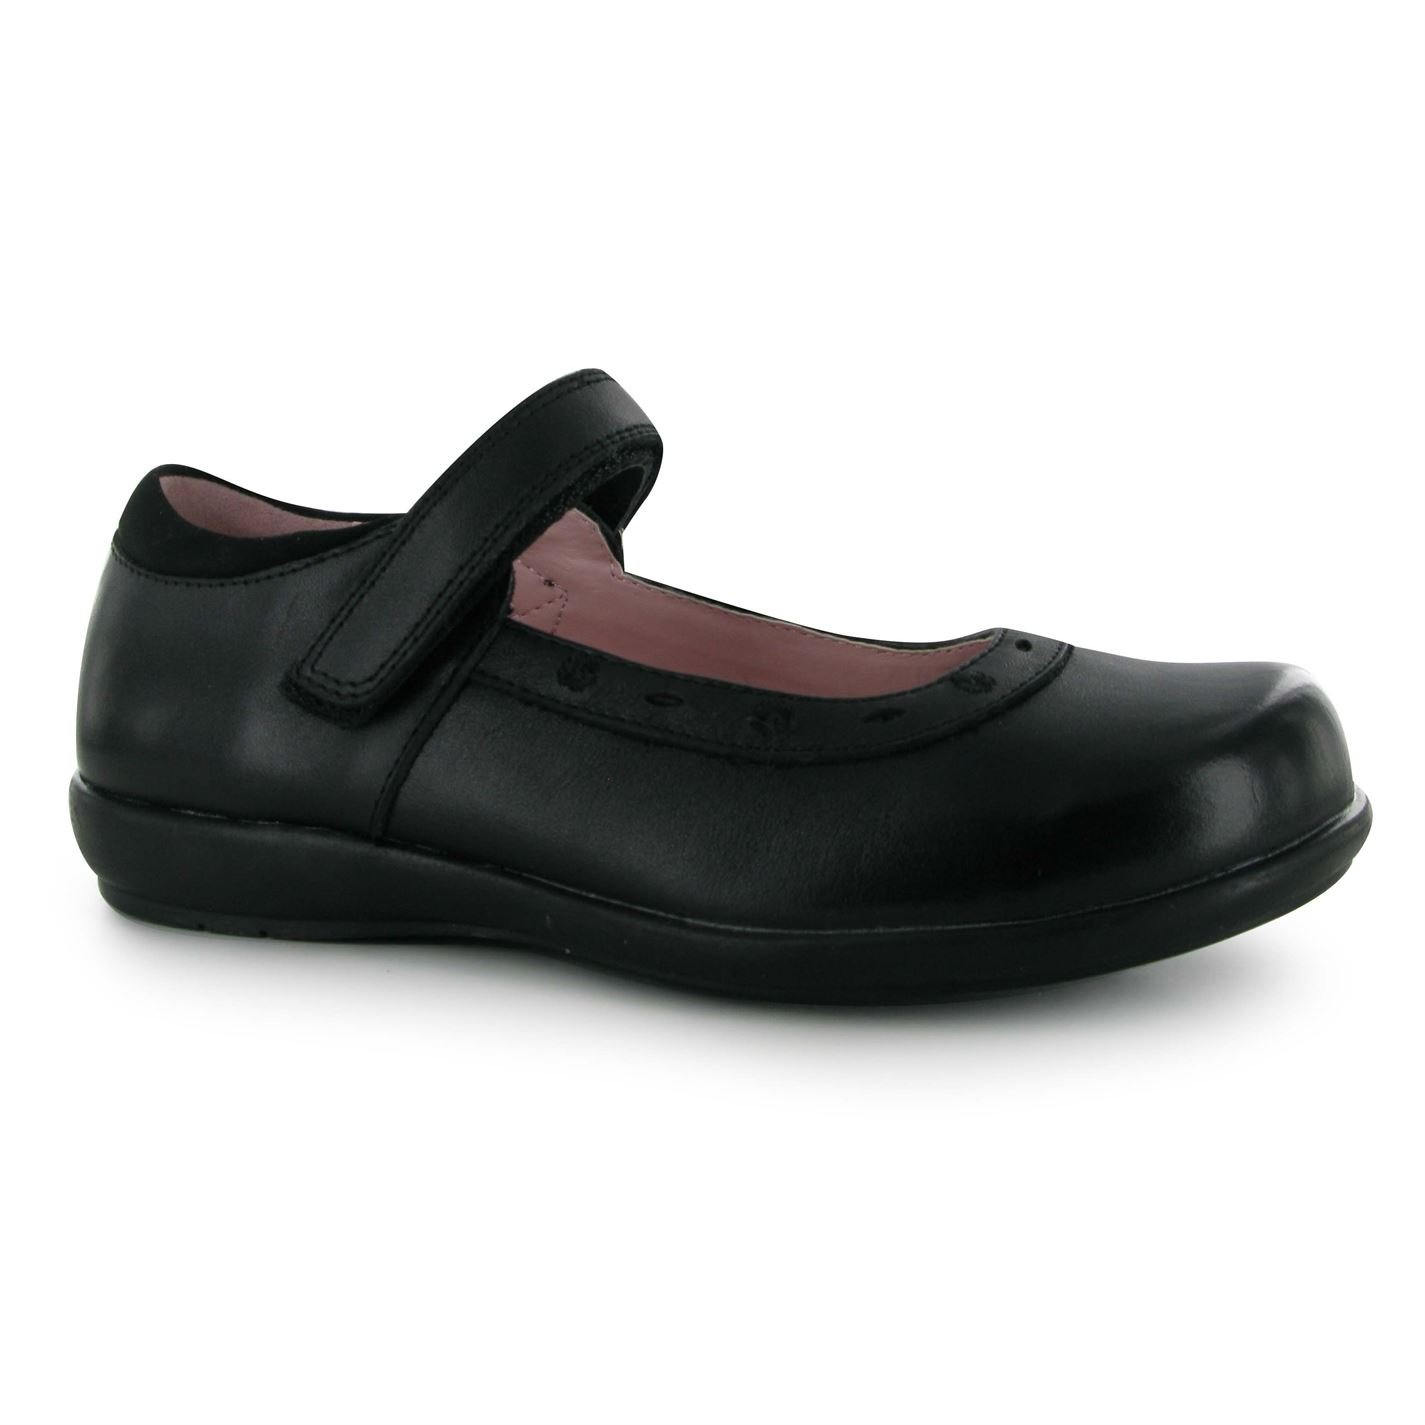 Kangol Kids Tiffin Emb Girls Childrens Flat Ballet Shoes Flats Ballerinas Black UK C13 (32)